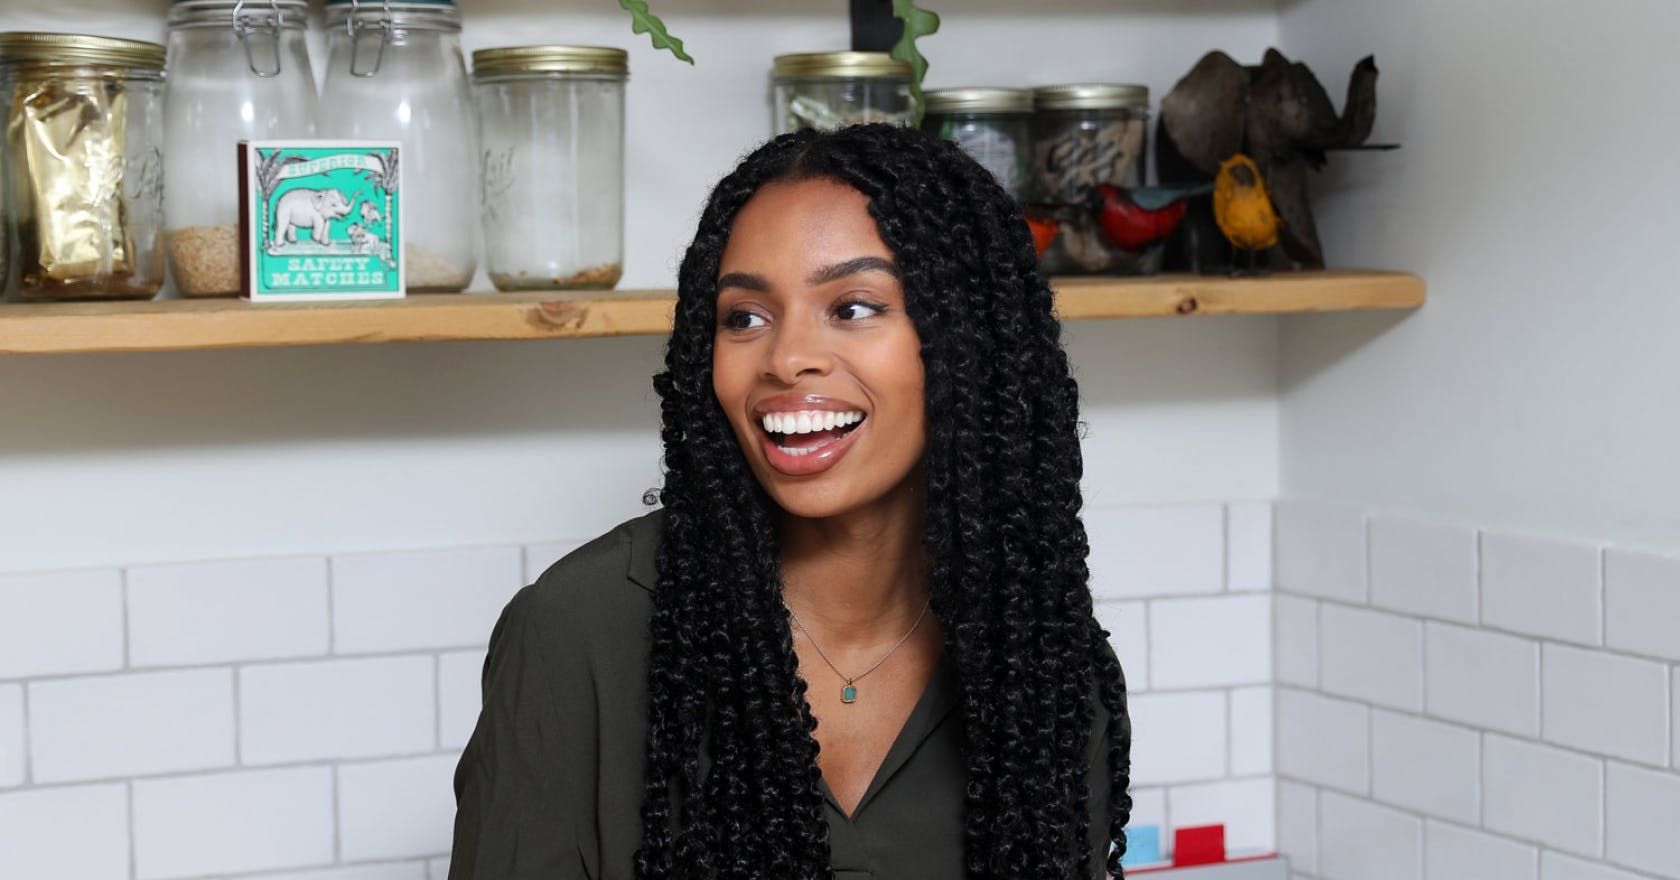 Stuck for meal ideas, would you join an Instagram live cook along?